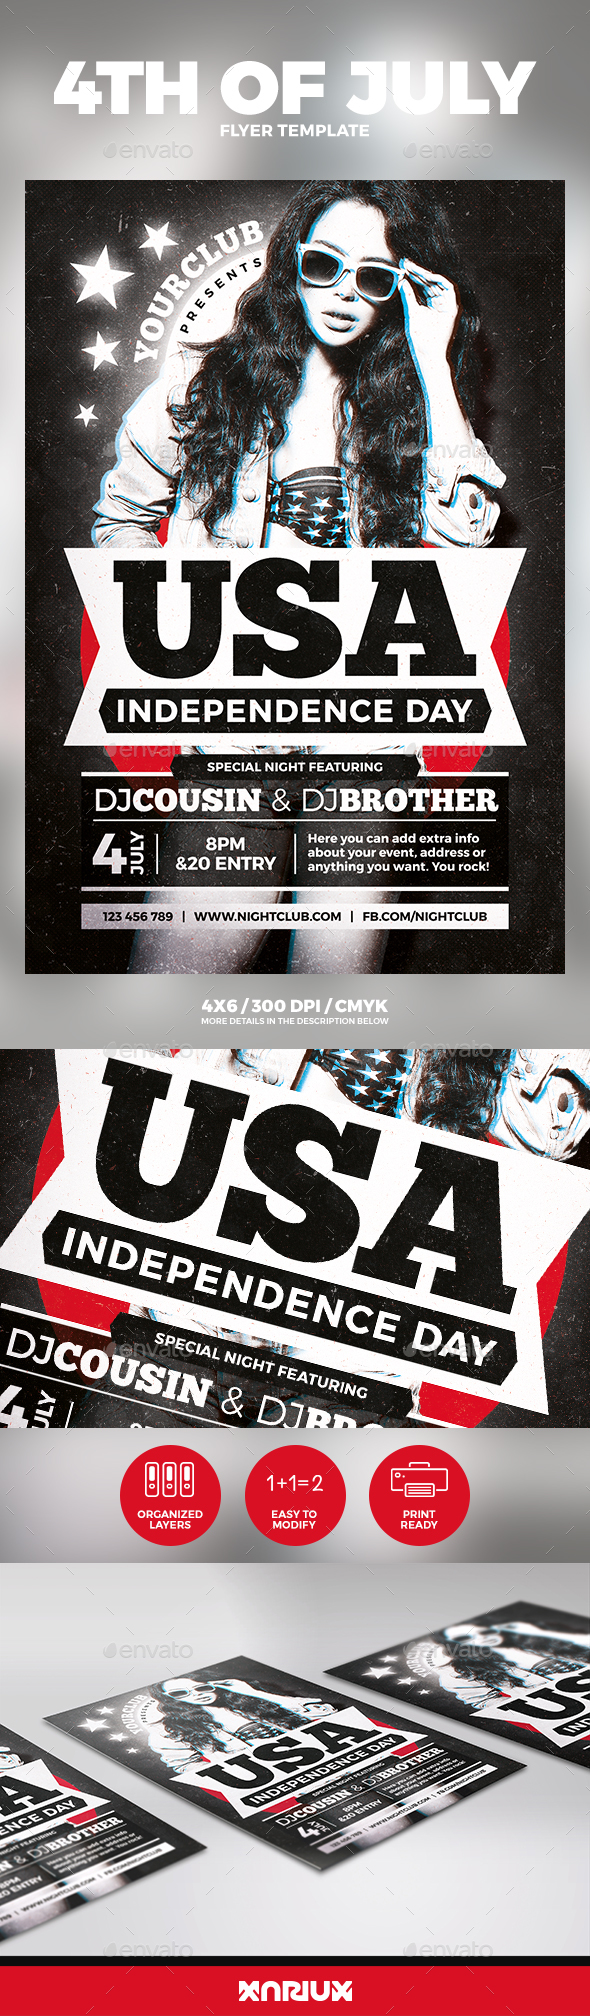 4th of July Independence Day Flyer - Events Flyers